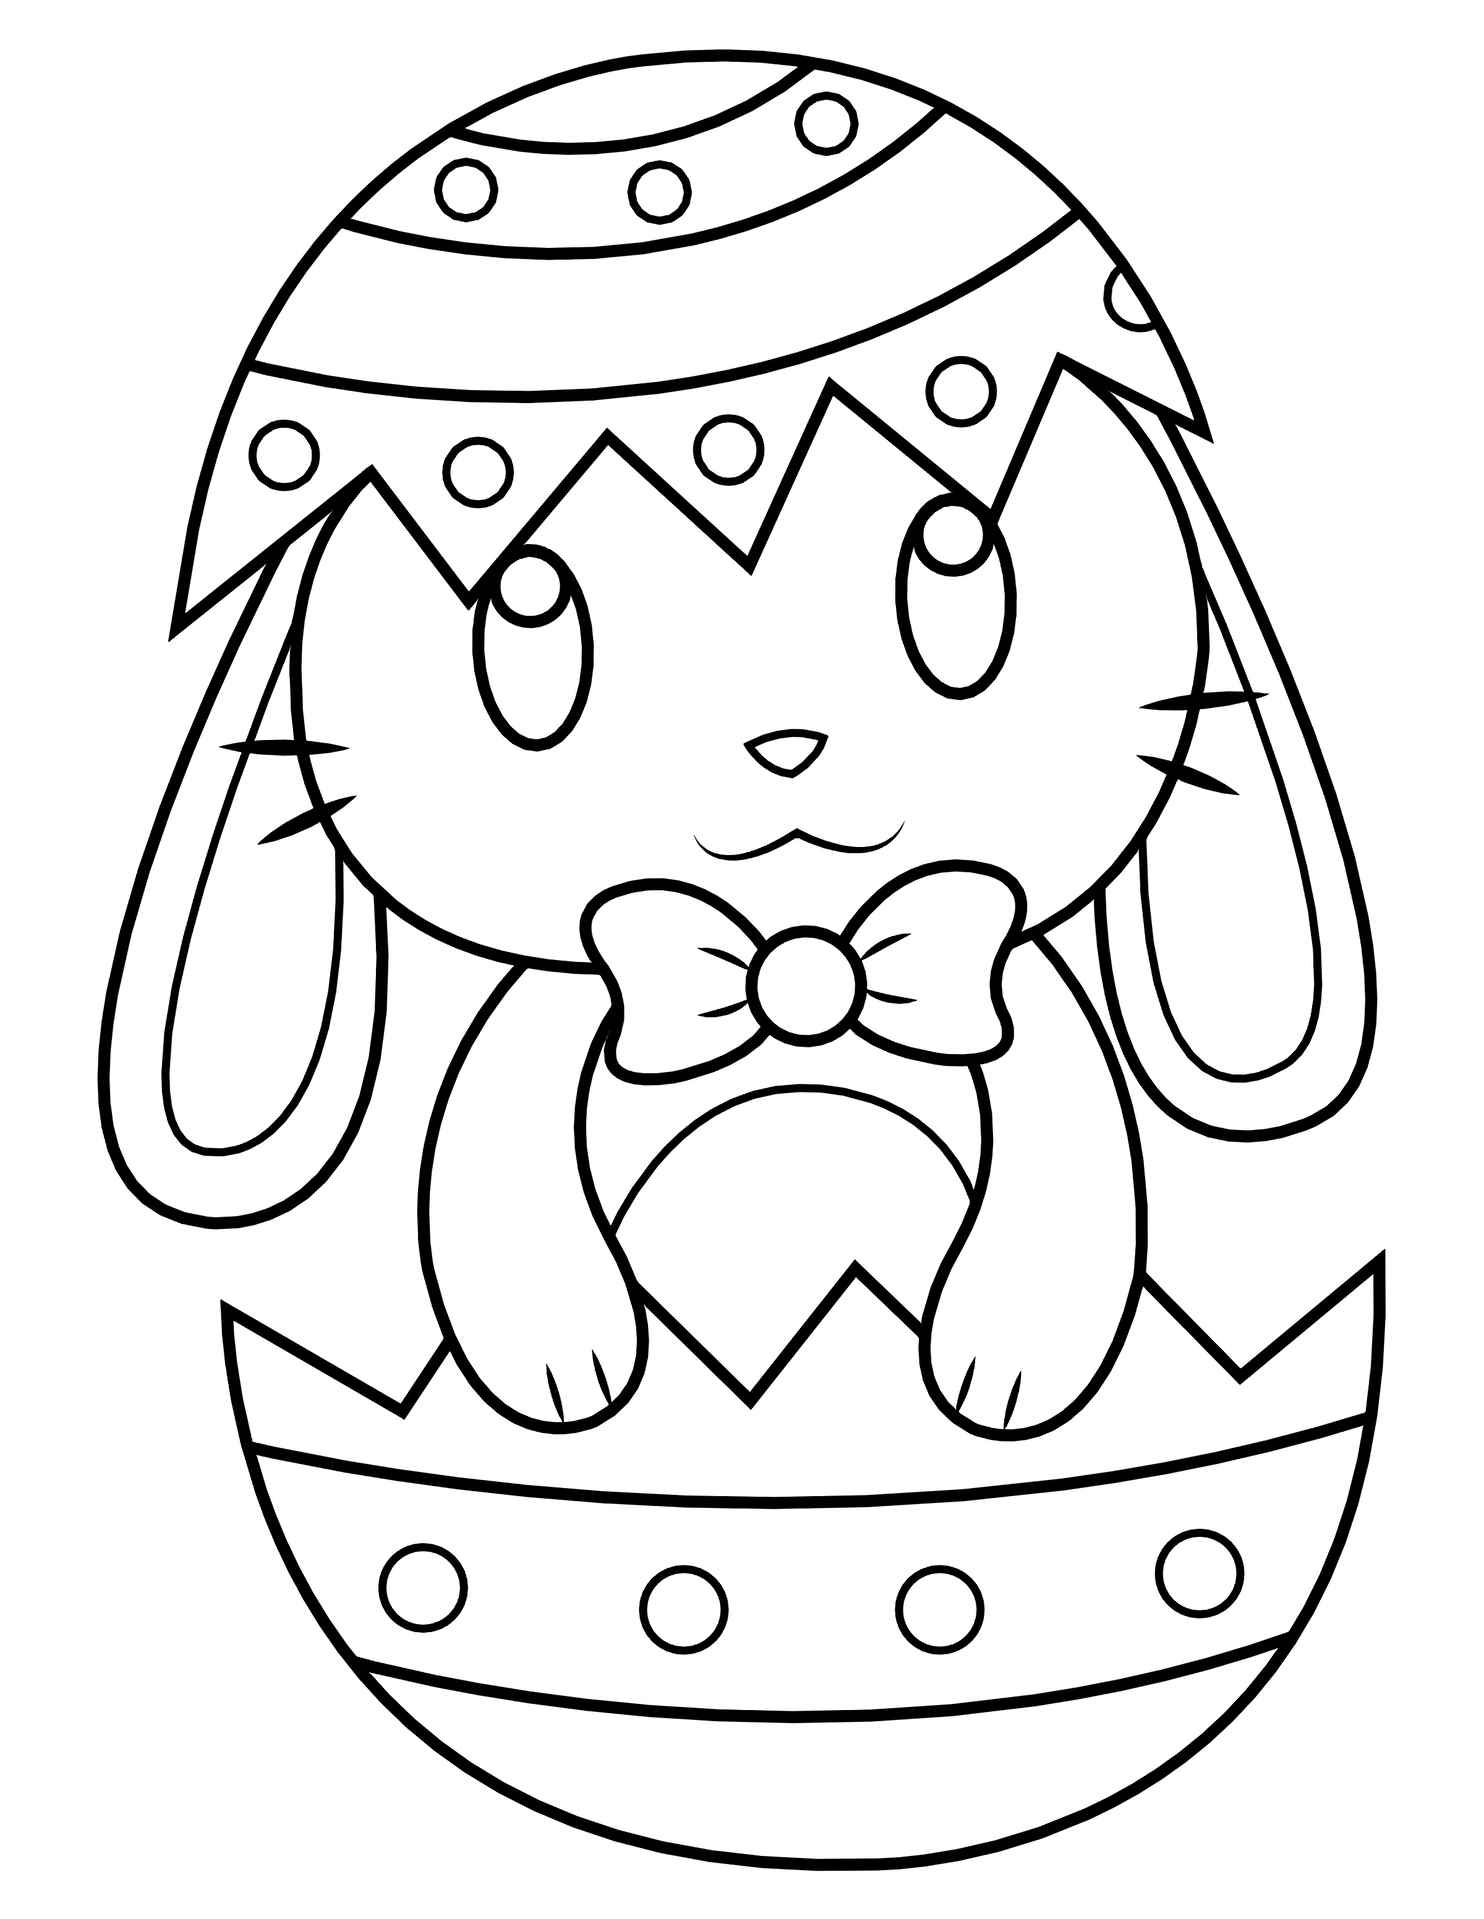 Easter Bunny In Easter Egg Coloring Page